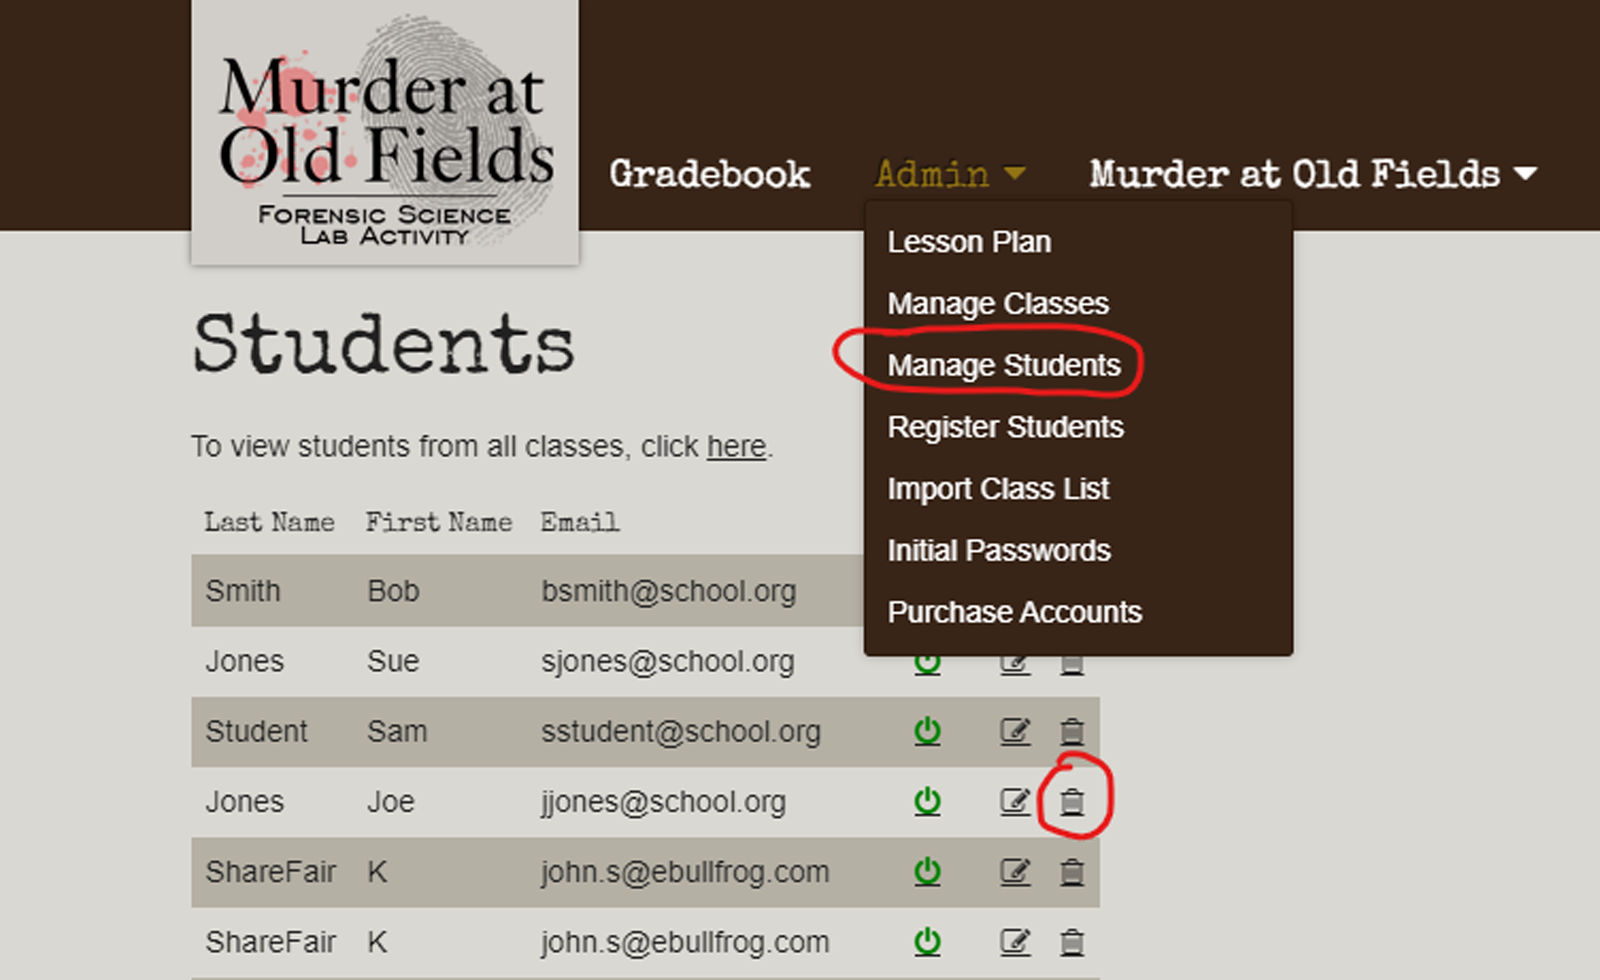 Reuse Murder at Old Fields Accounts